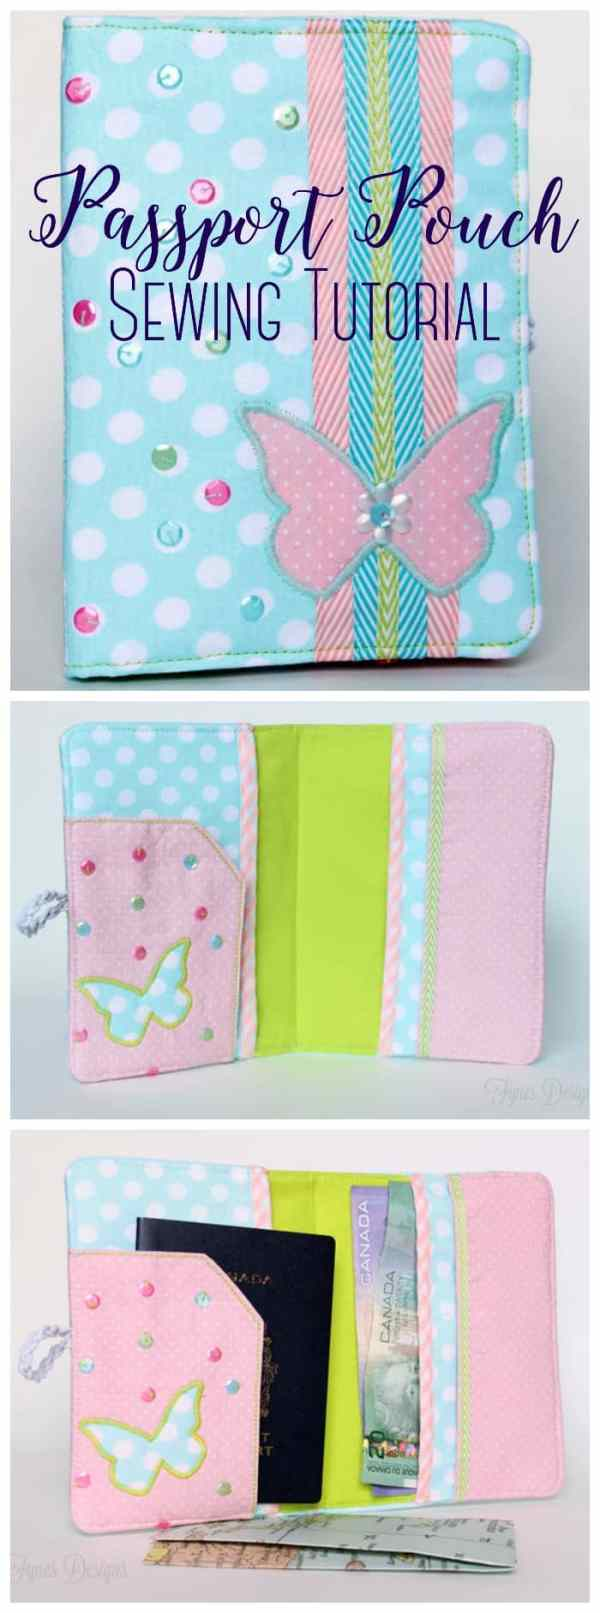 FREE passport pouch step by step sewing tutorial